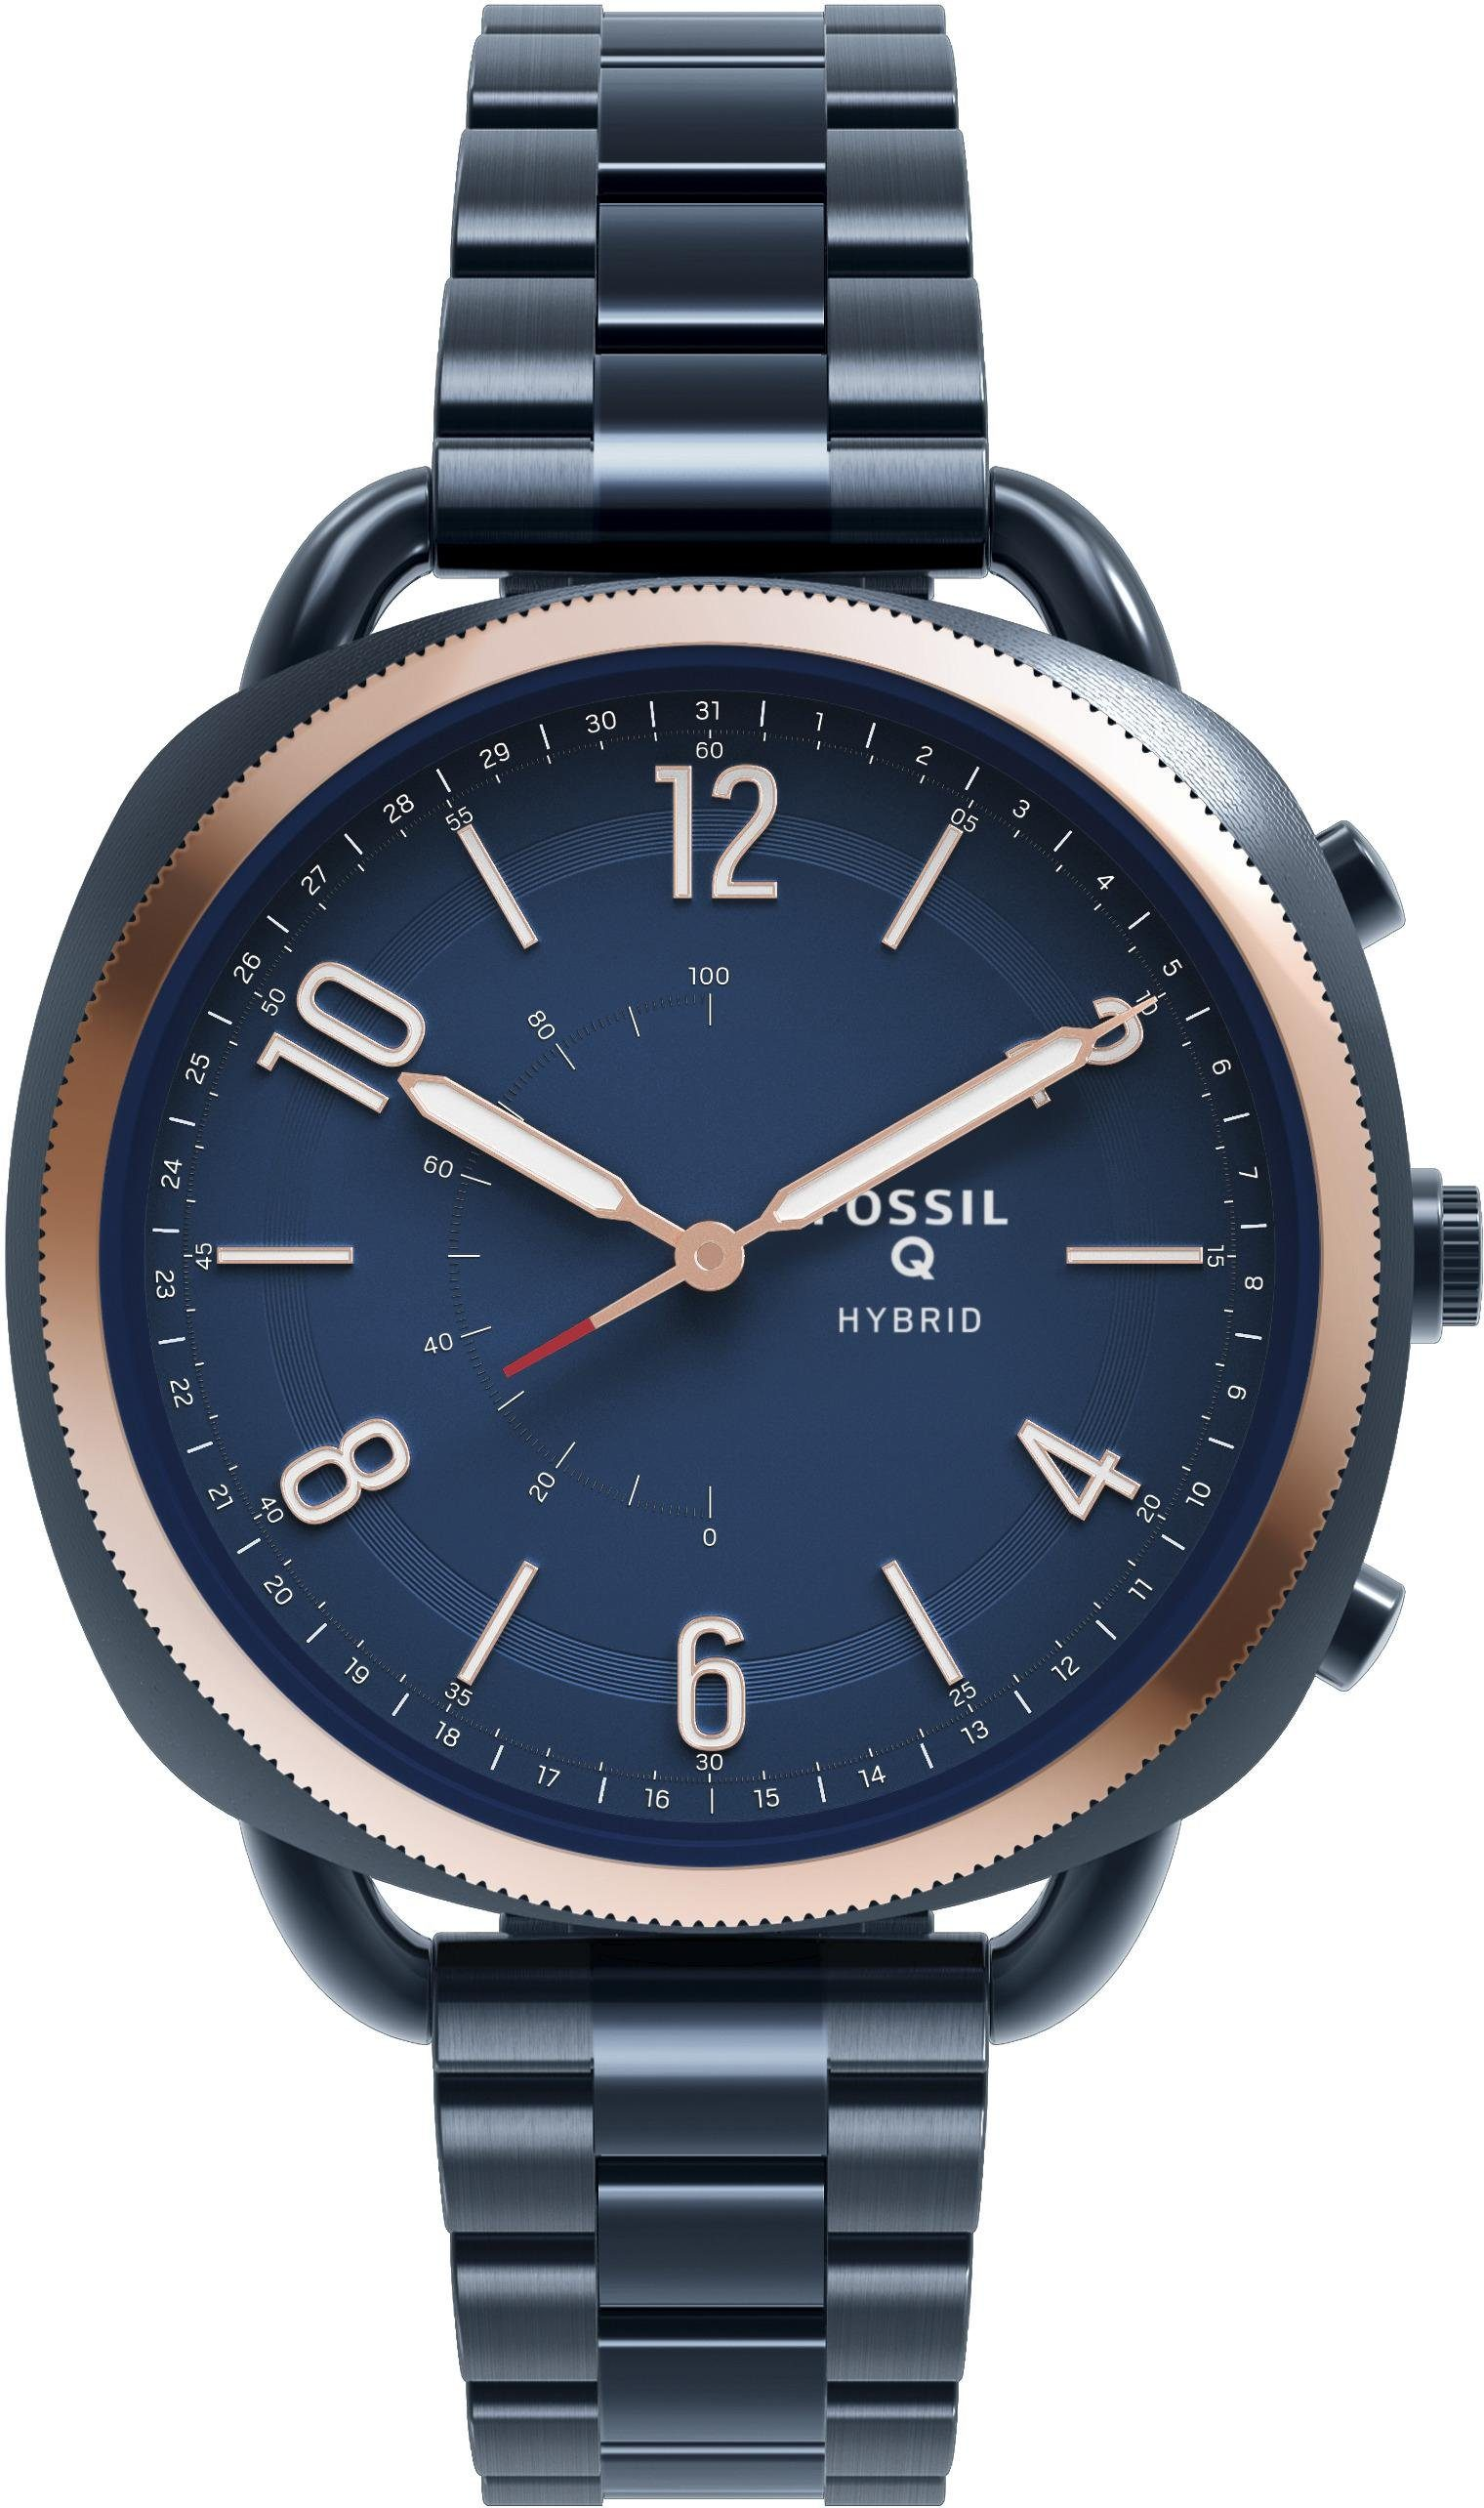 FOSSIL Q Q ACCOMPLICE, FTW1203 Smartwatch (Android Wear)